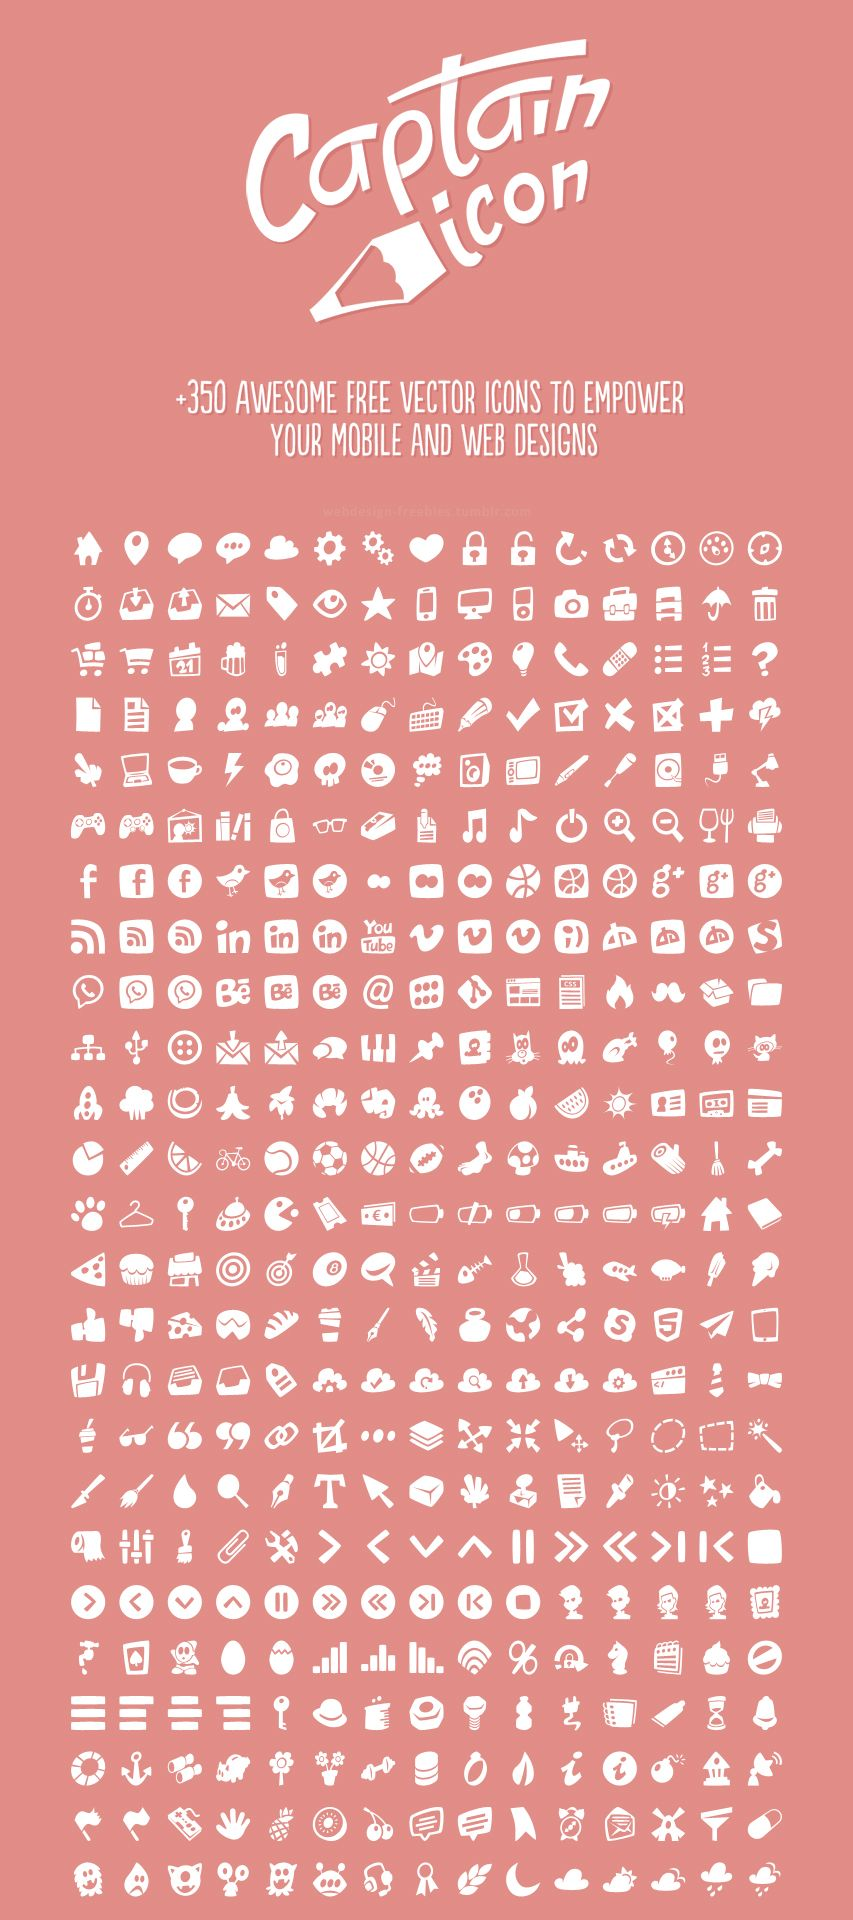 Captain Icon +350 Awesome free vector icons to empower